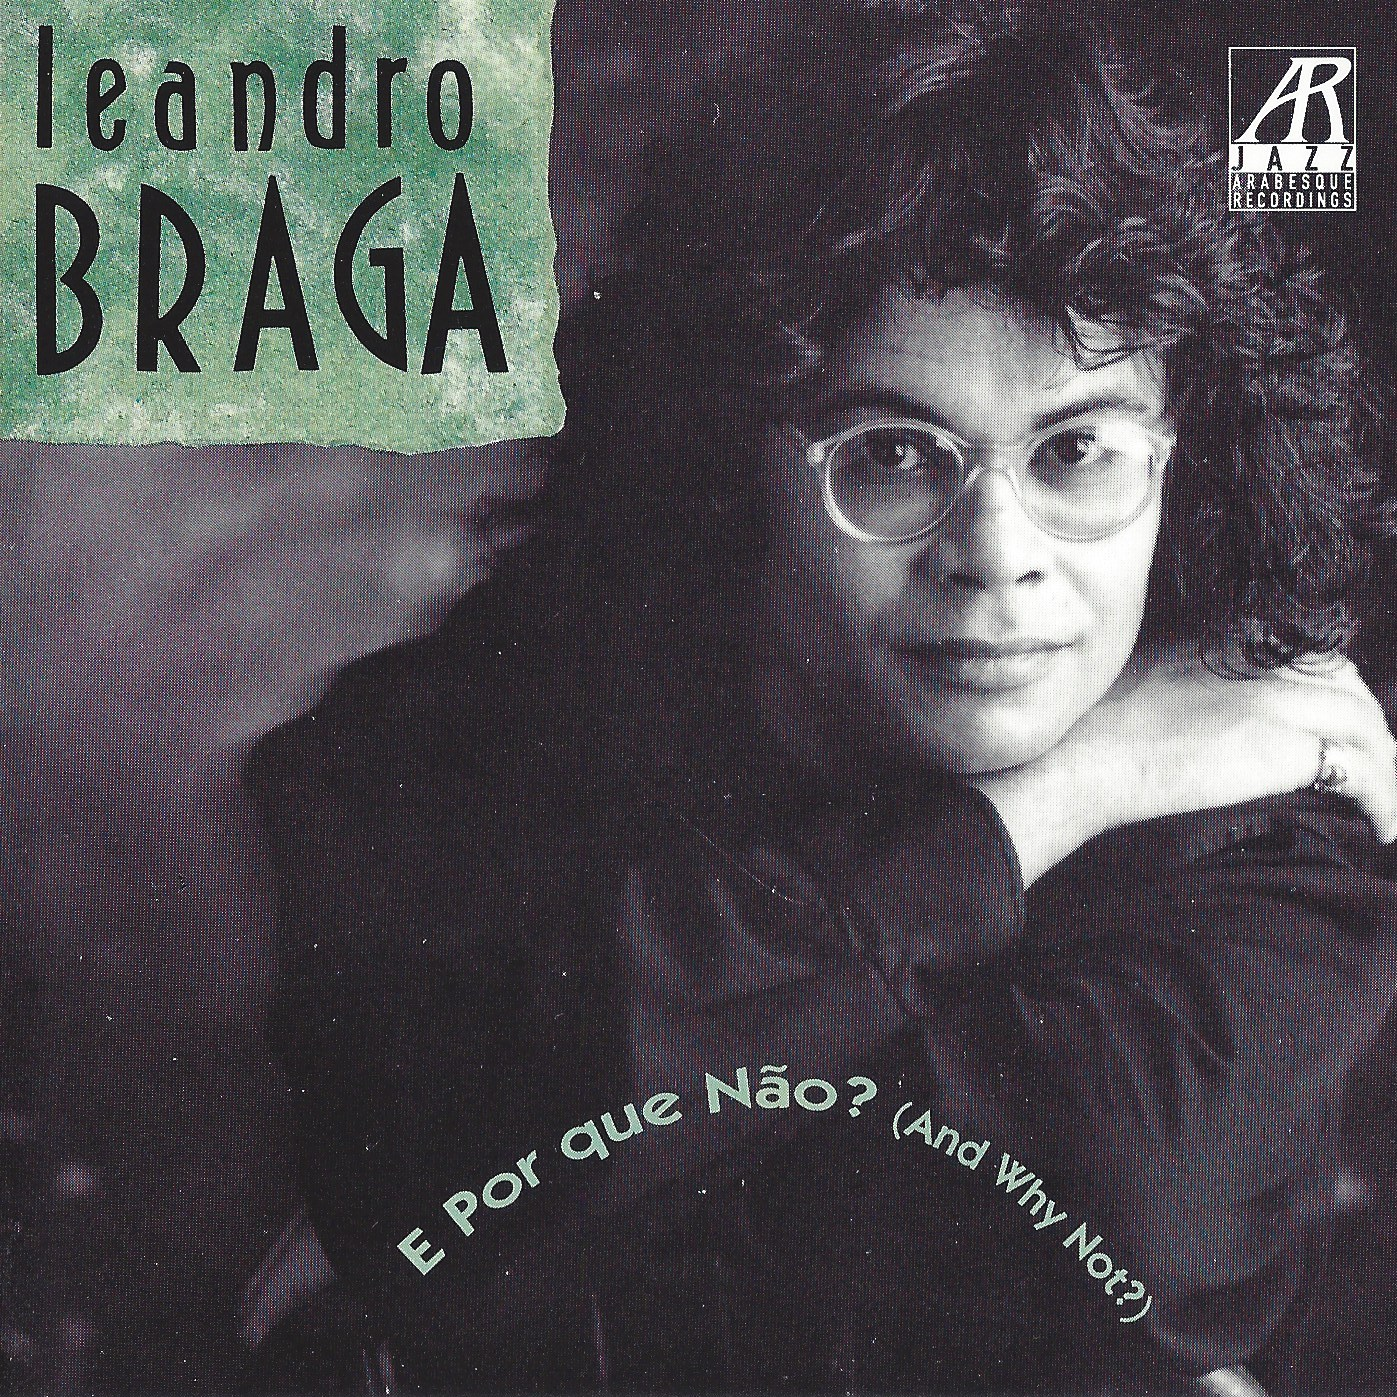 AJ0104  | E Por Que Nāo? (And Why Not?) |  Leandro Braga